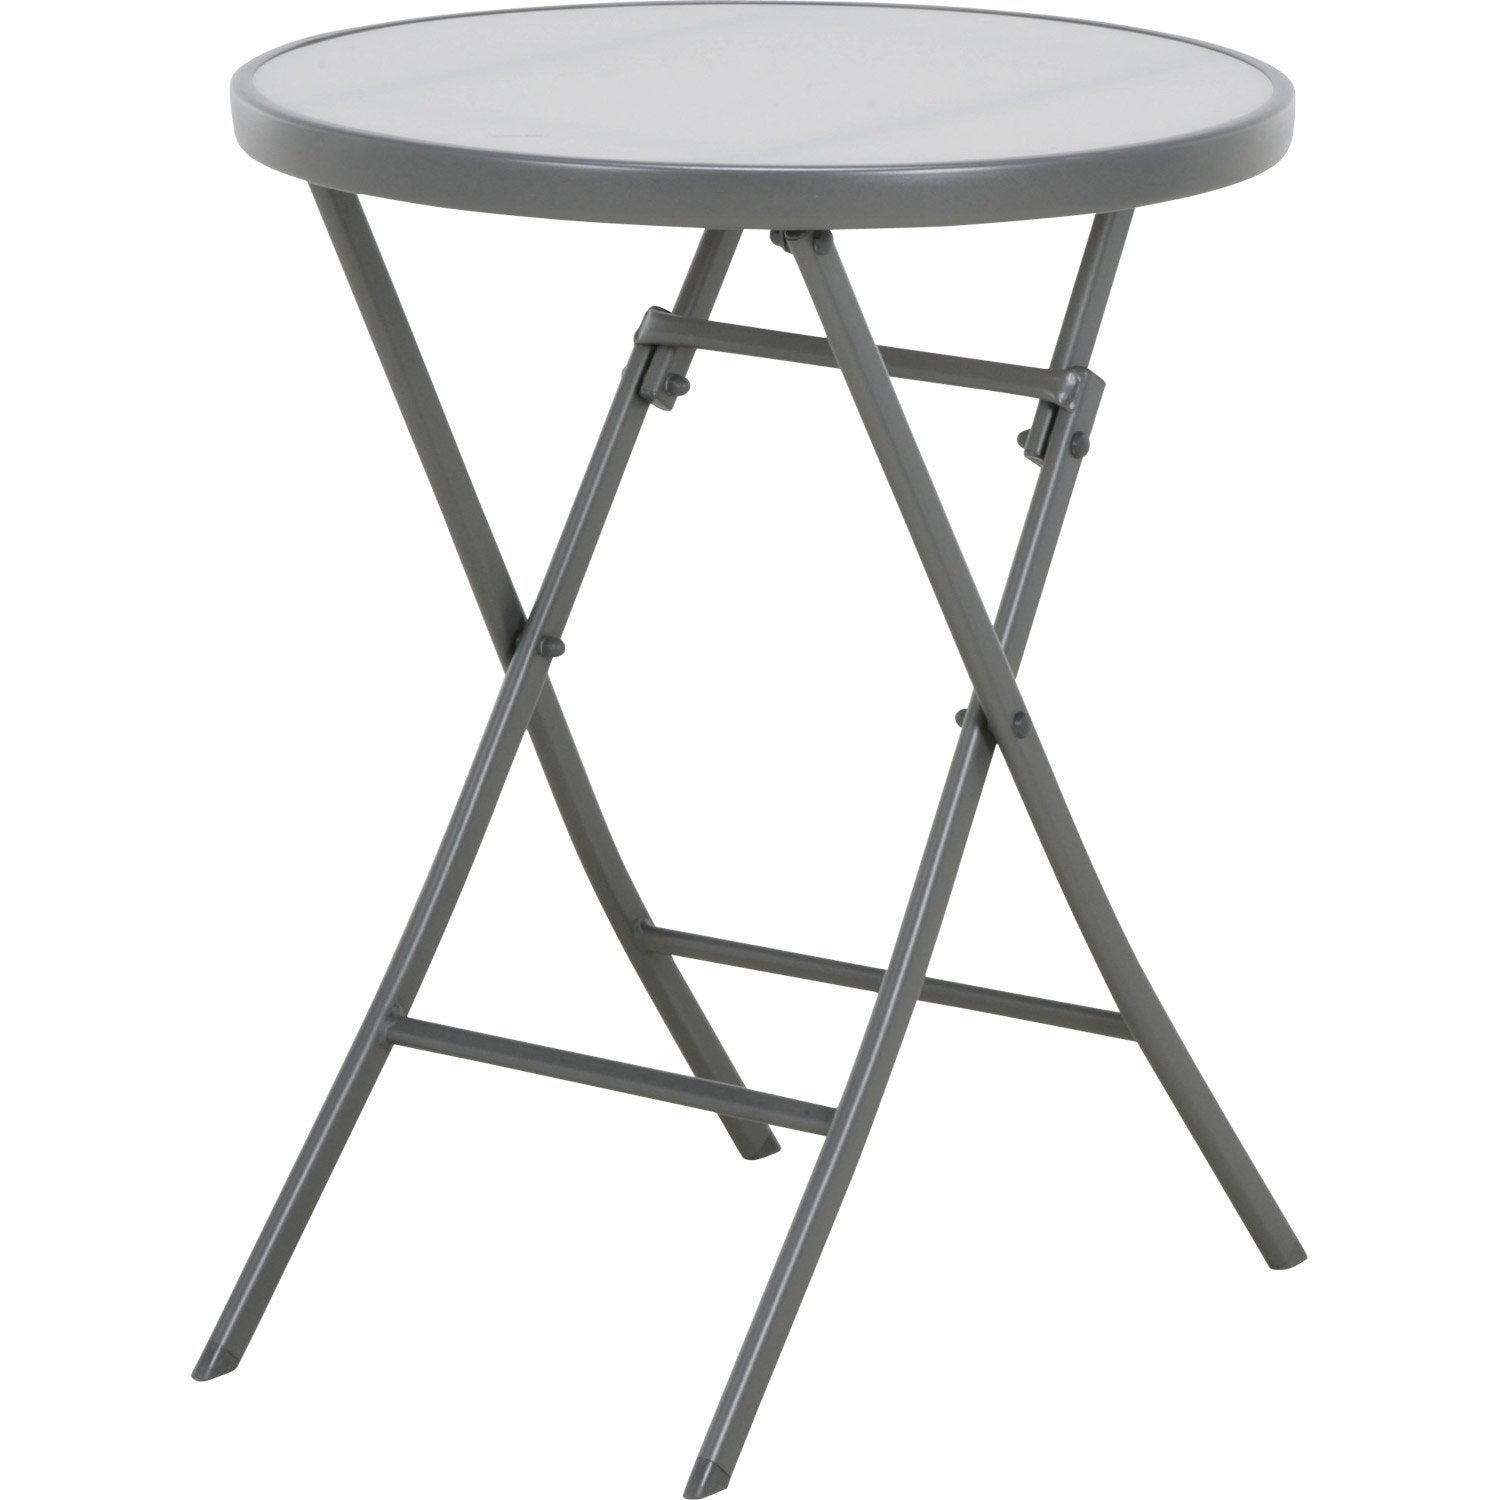 Table de jardin pliante chez carrefour des - Leroy merlin table pliante ...